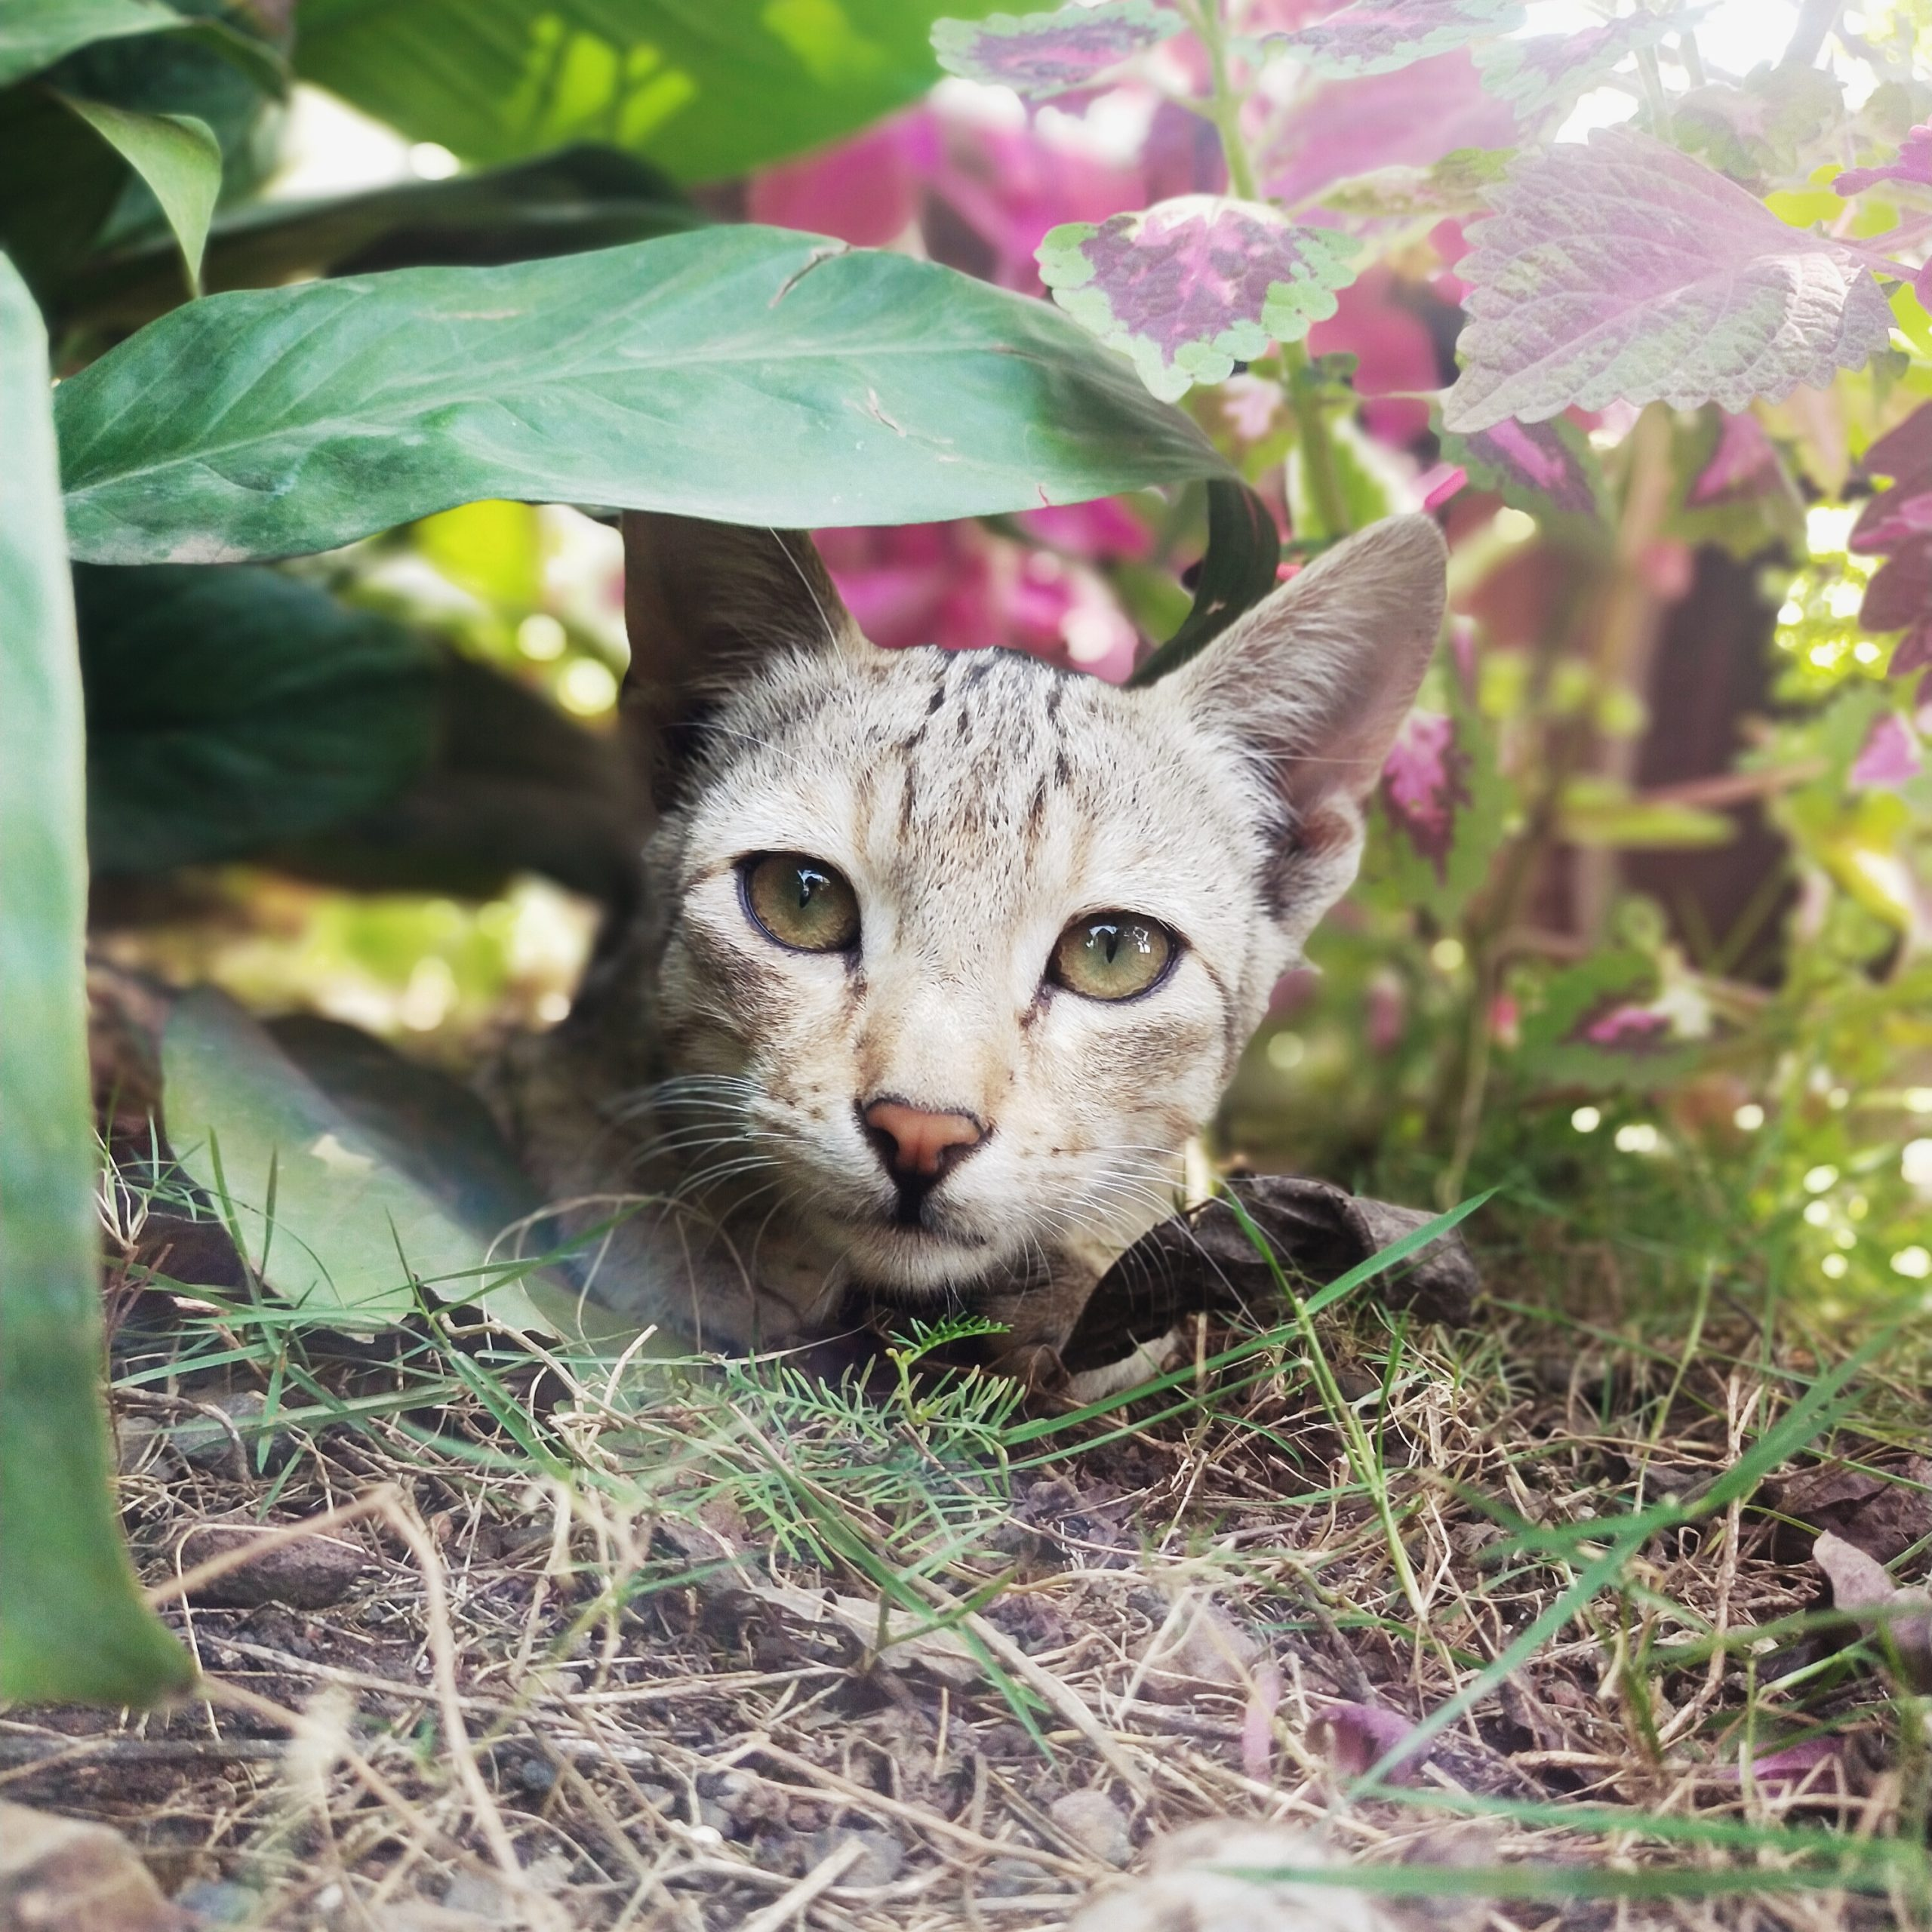 Cat under the plant in the garden